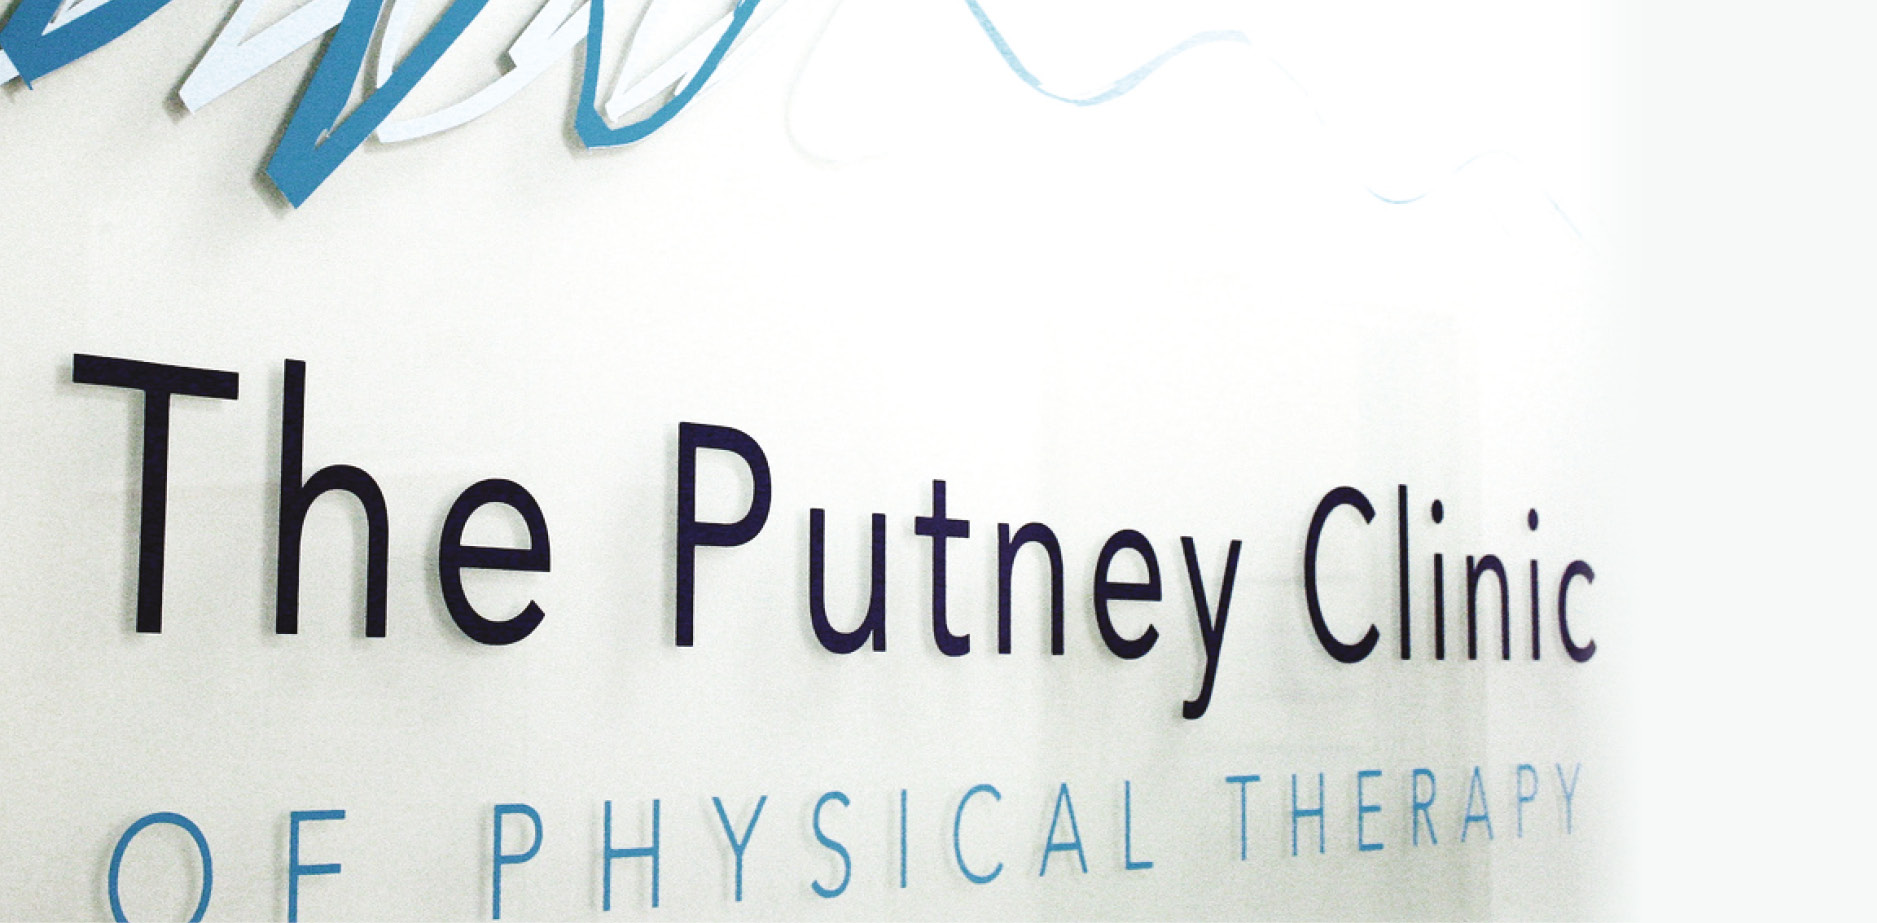 Testimonials from clients of The Putney Clinic of Physical Therapy